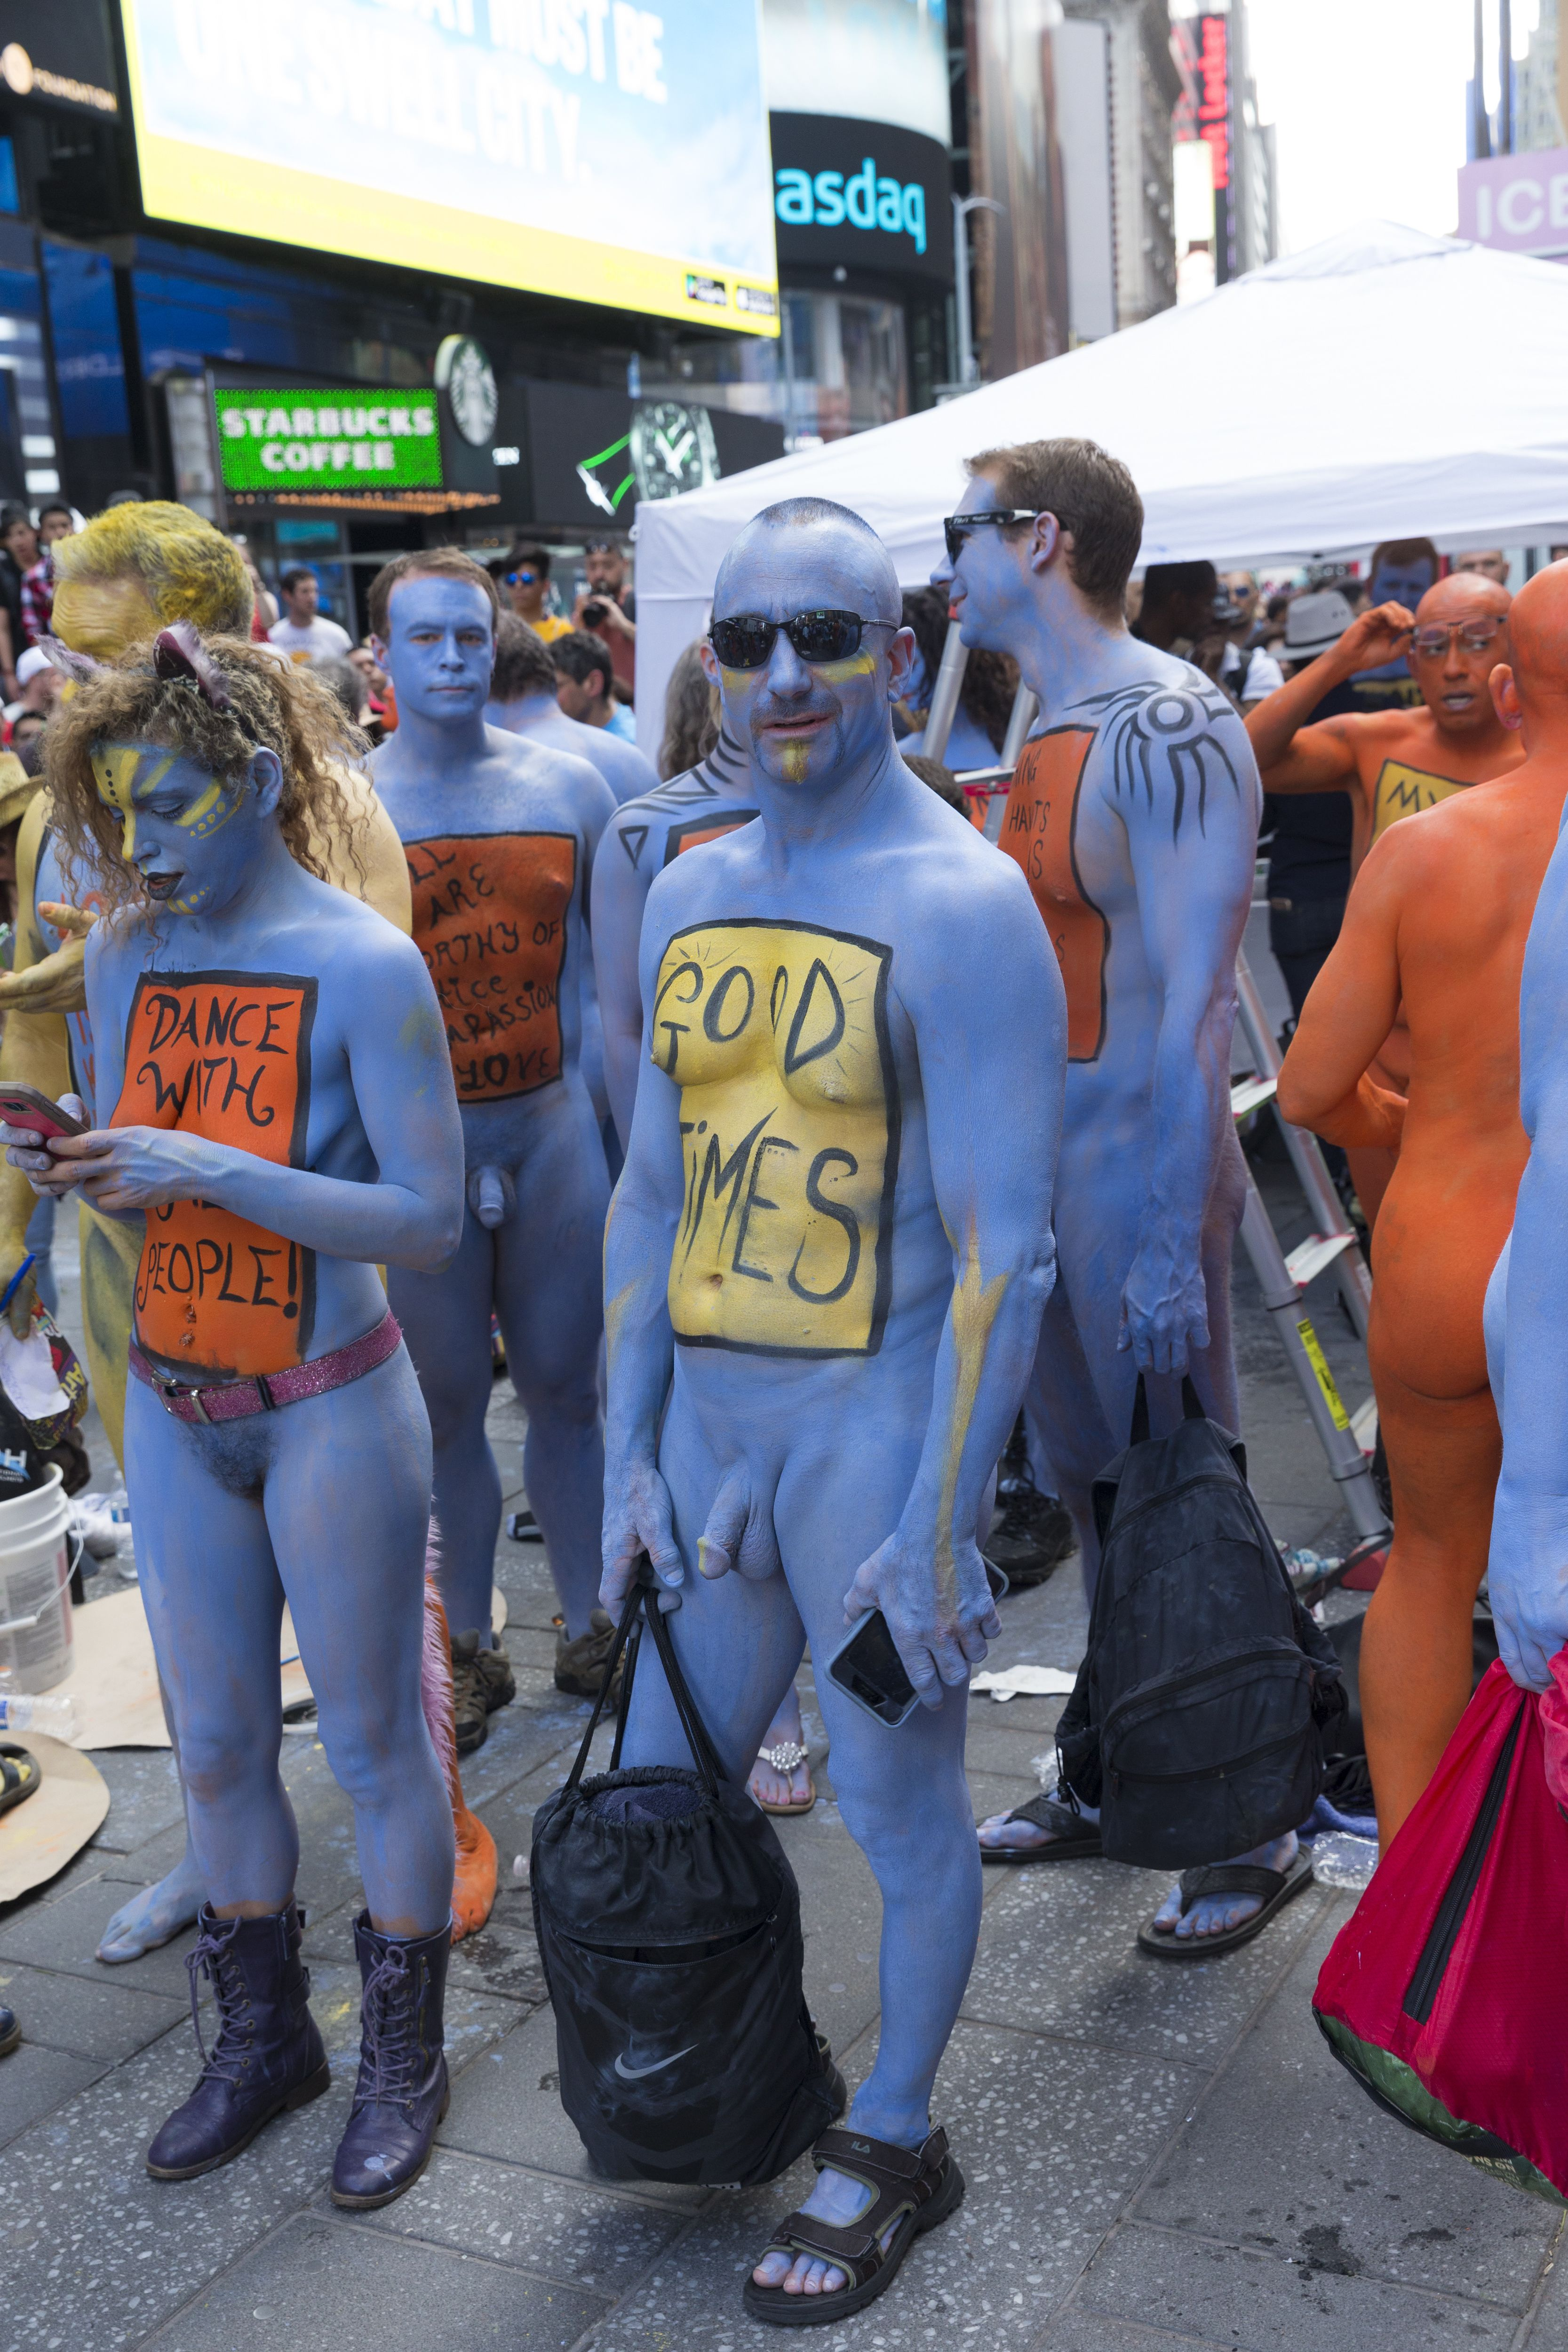 Stunning: Hundreds Go Naked in Times Square for Body Positivity